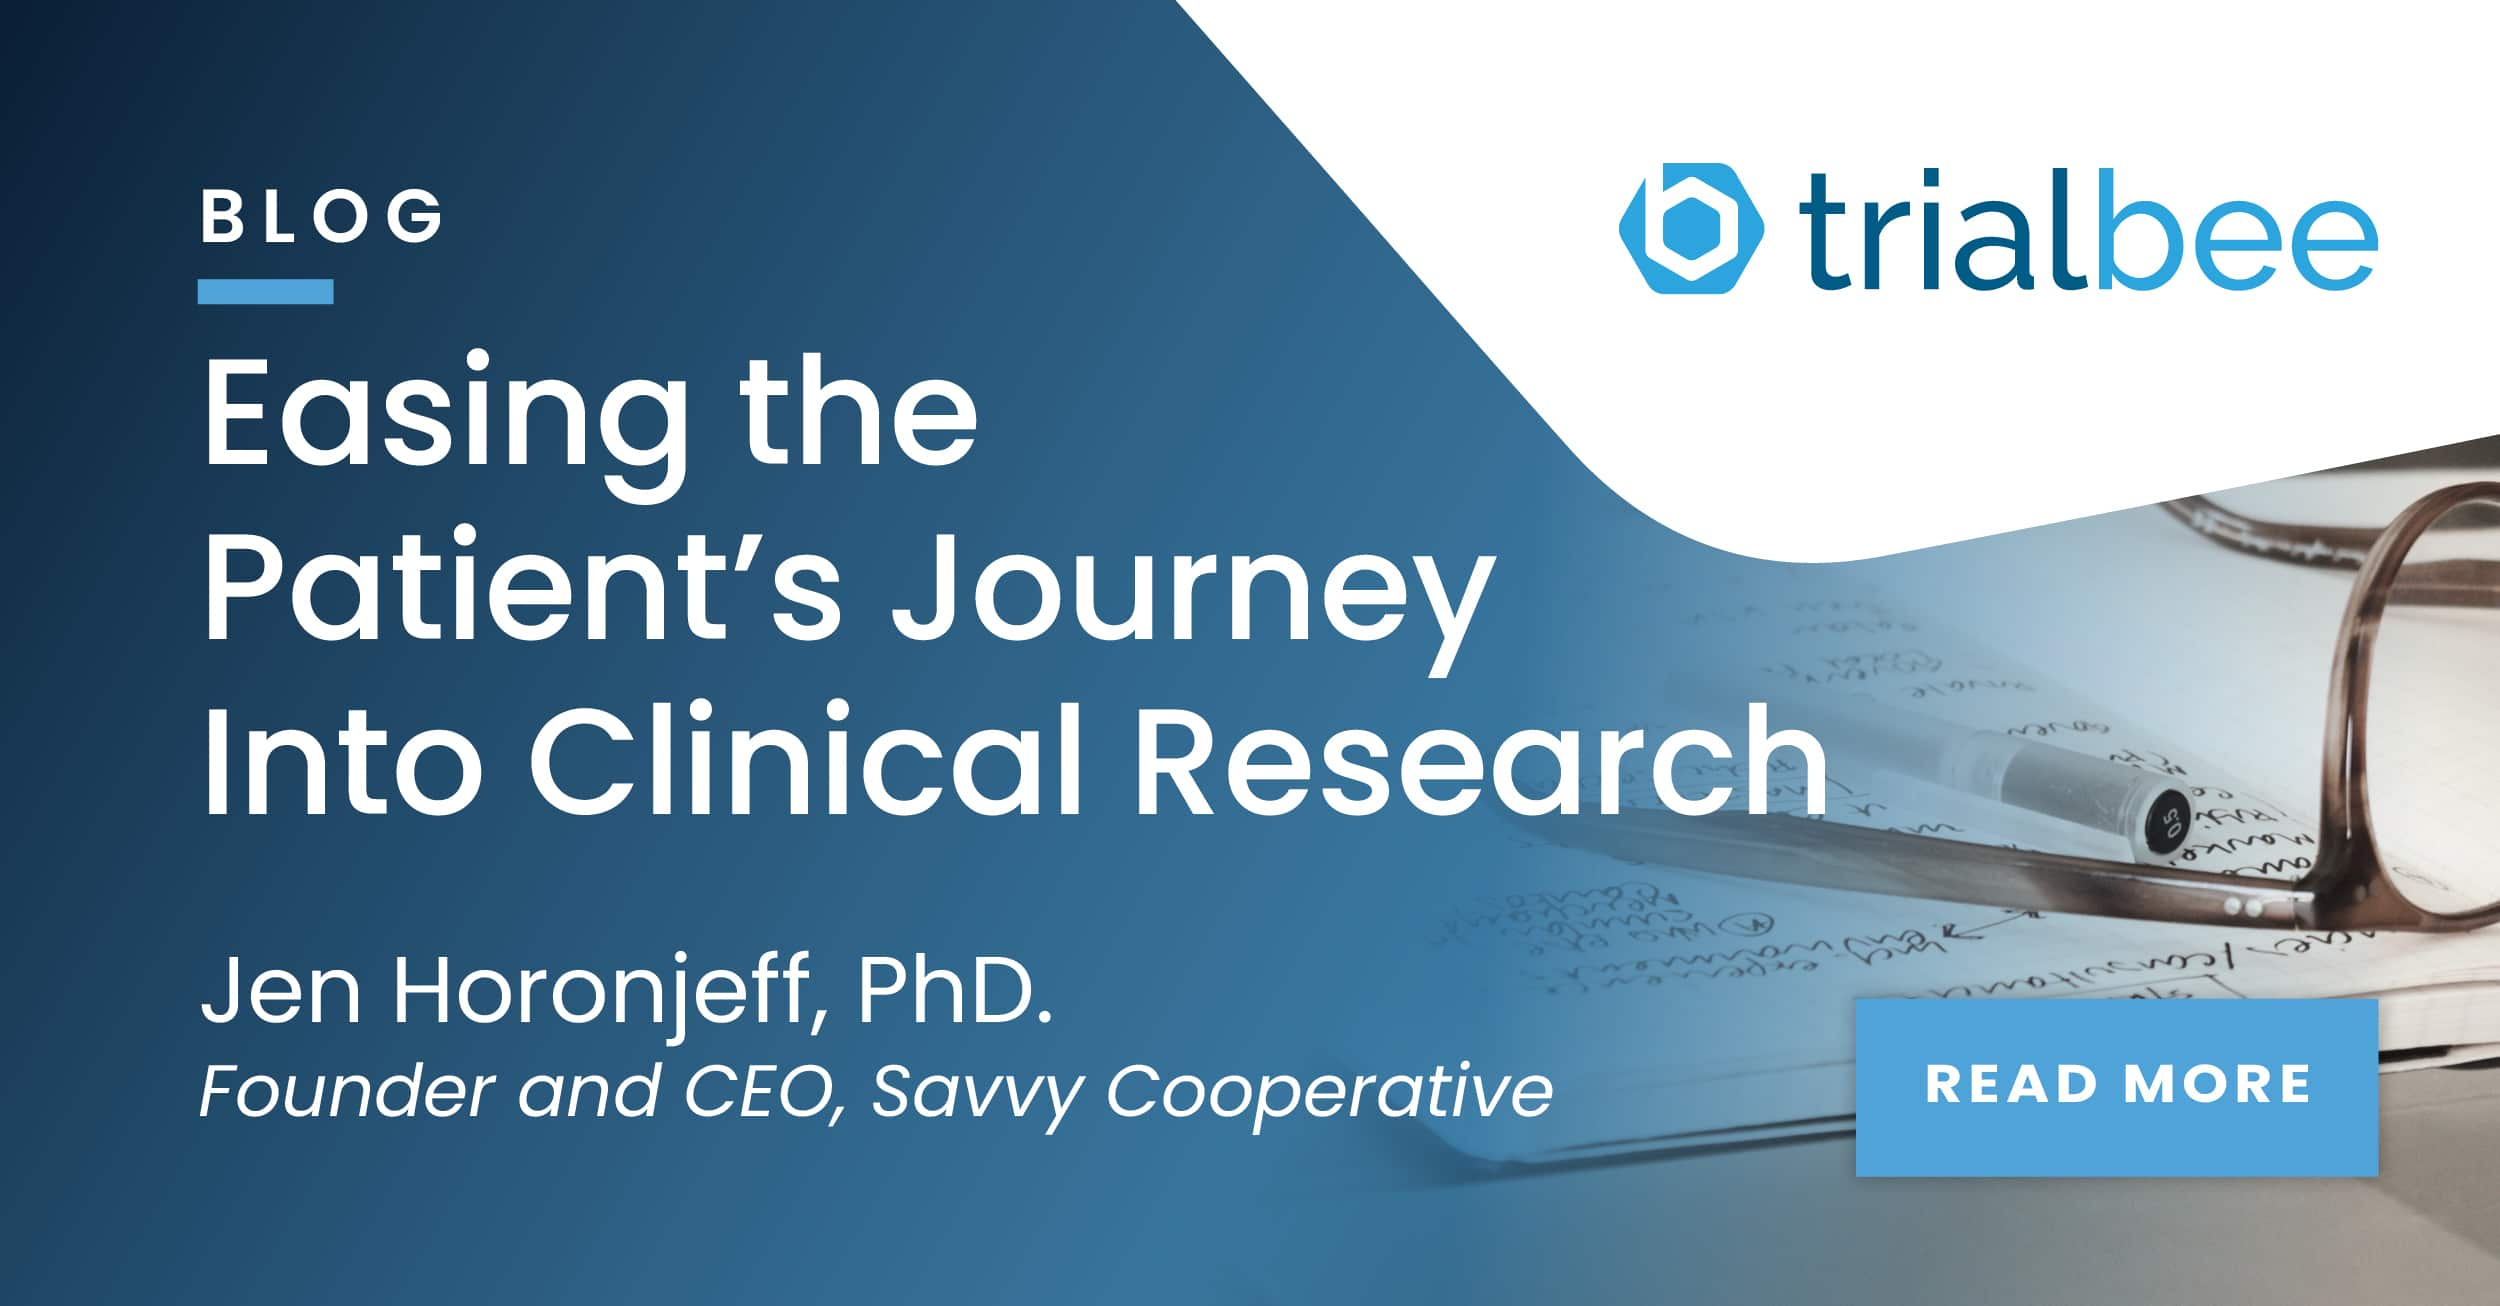 Easing the Patient's Journey Into Clinical Research